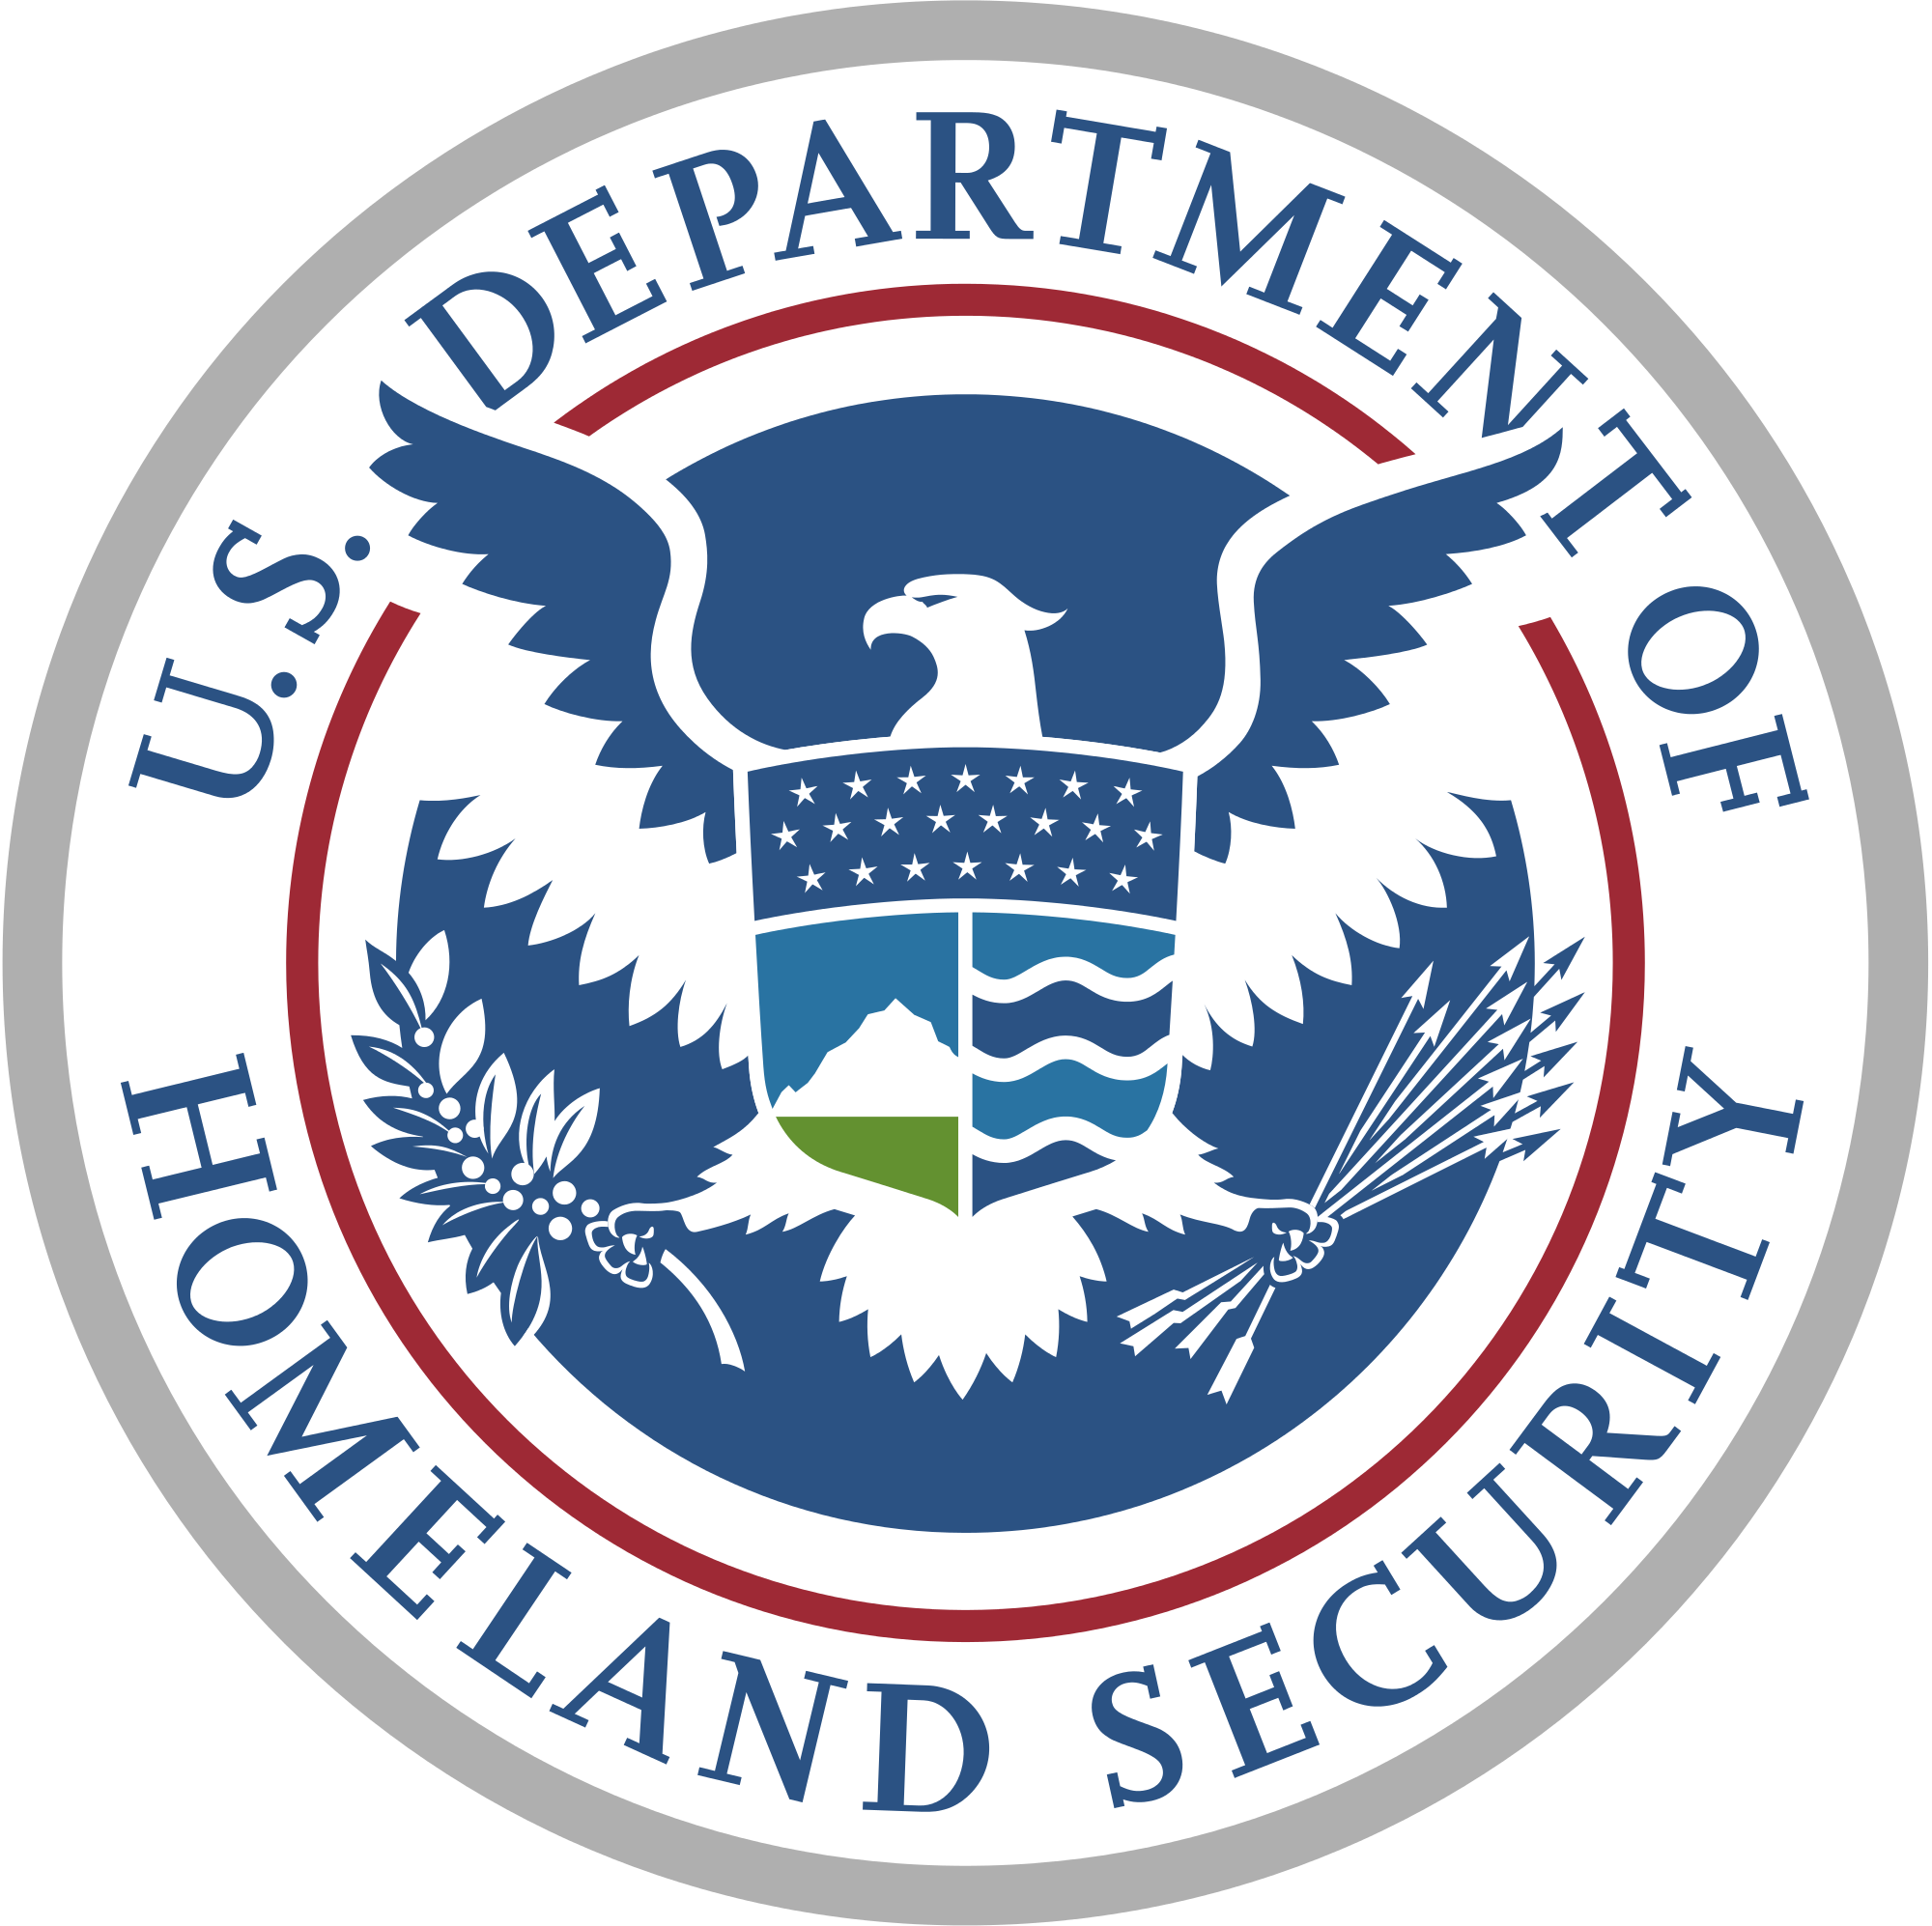 Homeland security symbol images symbol and sign ideas department of homeland security dhs command and general staff dhs to form new wmd office buycottarizona buycottarizona